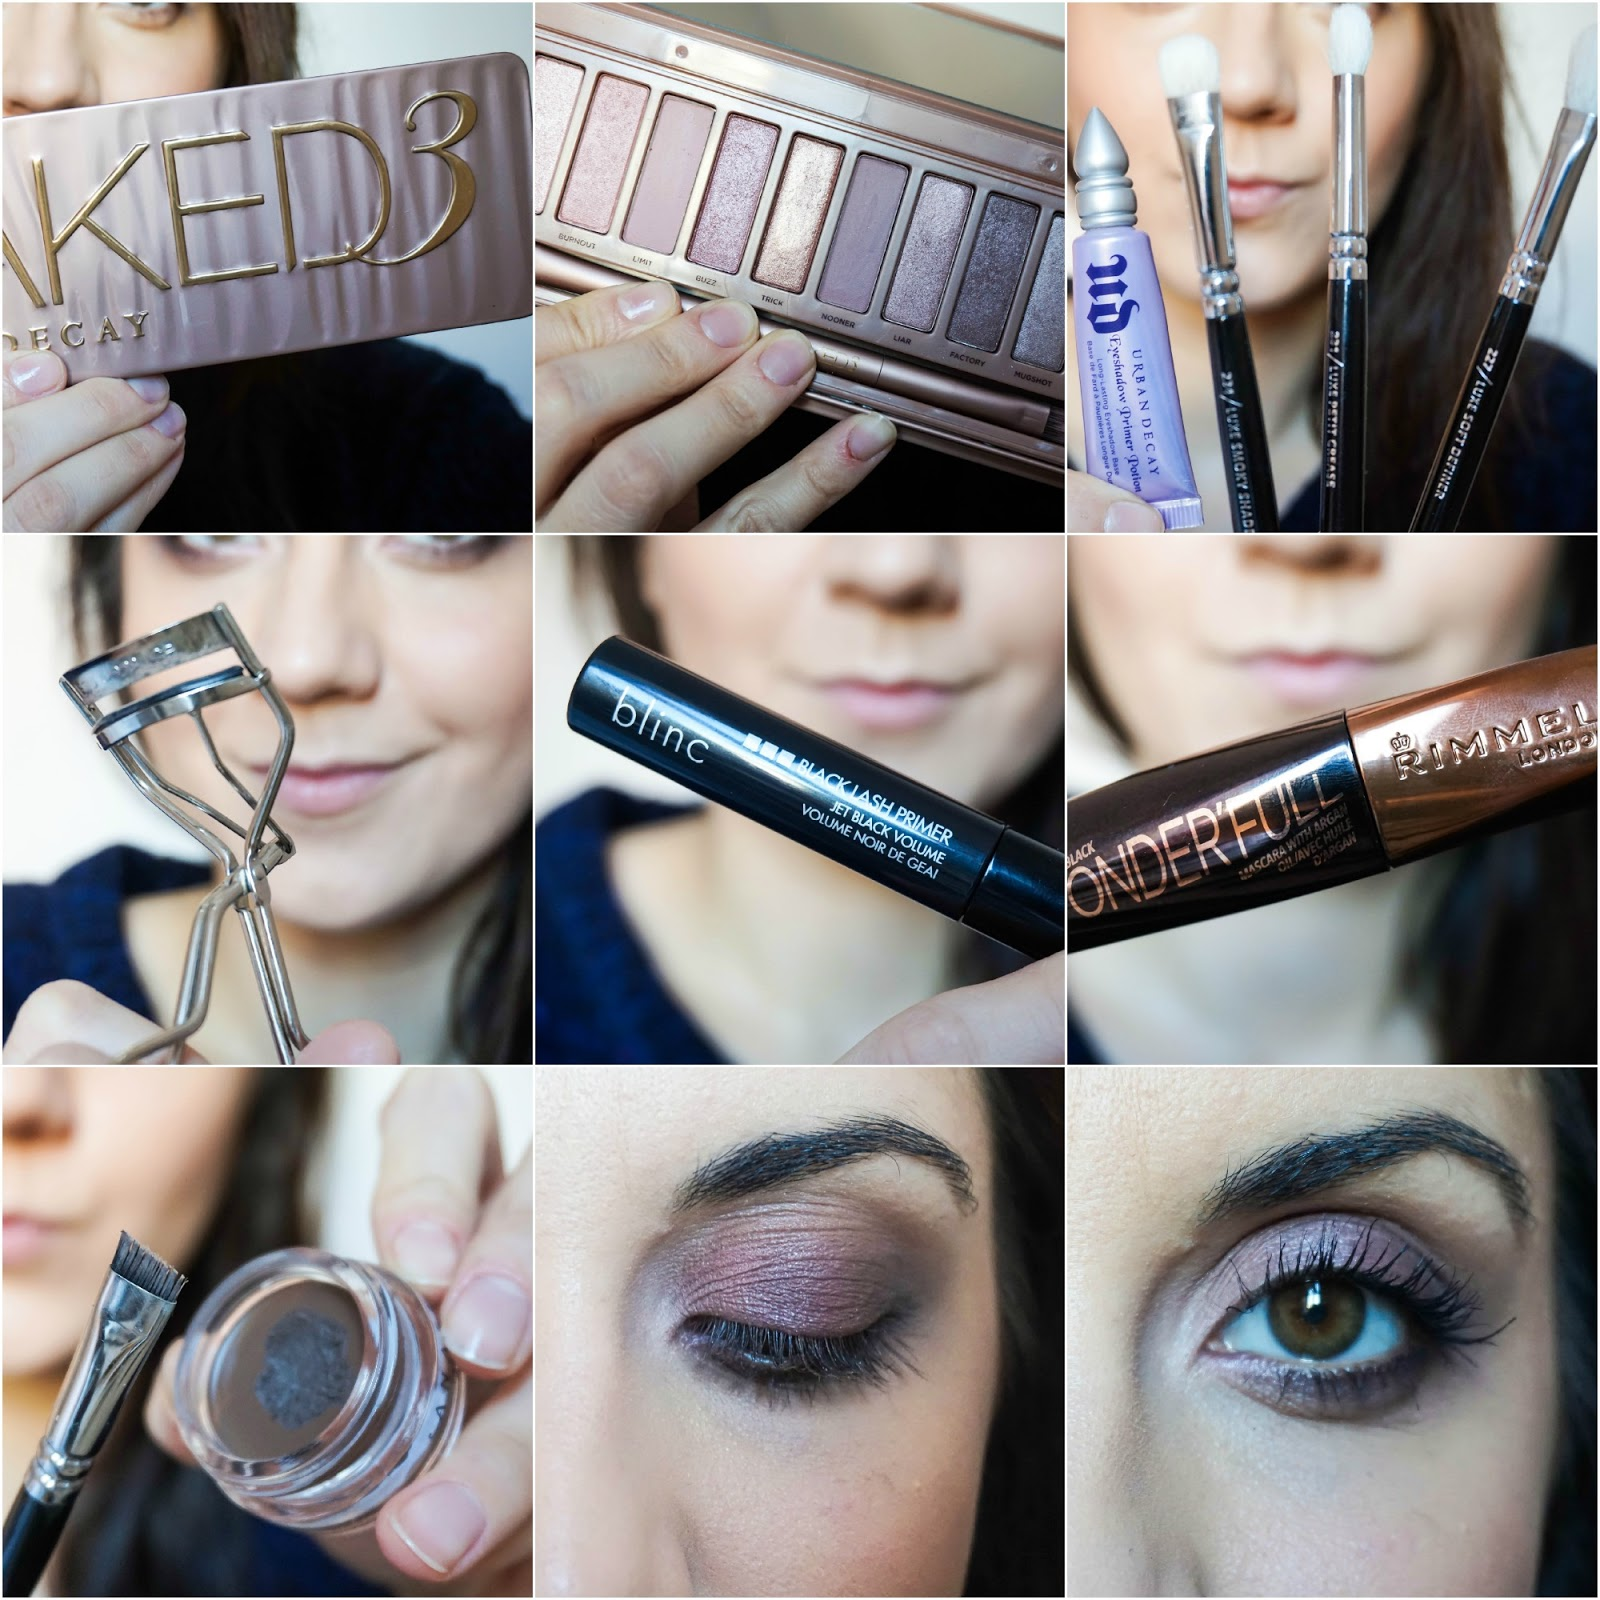 Naked 3, Urban Decay Eyeshadow Primer, Zoeva Eye Brushes, Shu Uemura Eyelash Curler, Blinc Black Lash Primer, Rimmel Wonder'full Extreme Black Mascara, Anastasia Beverly Hills DipBrow, Zoeva 322 Brow Line